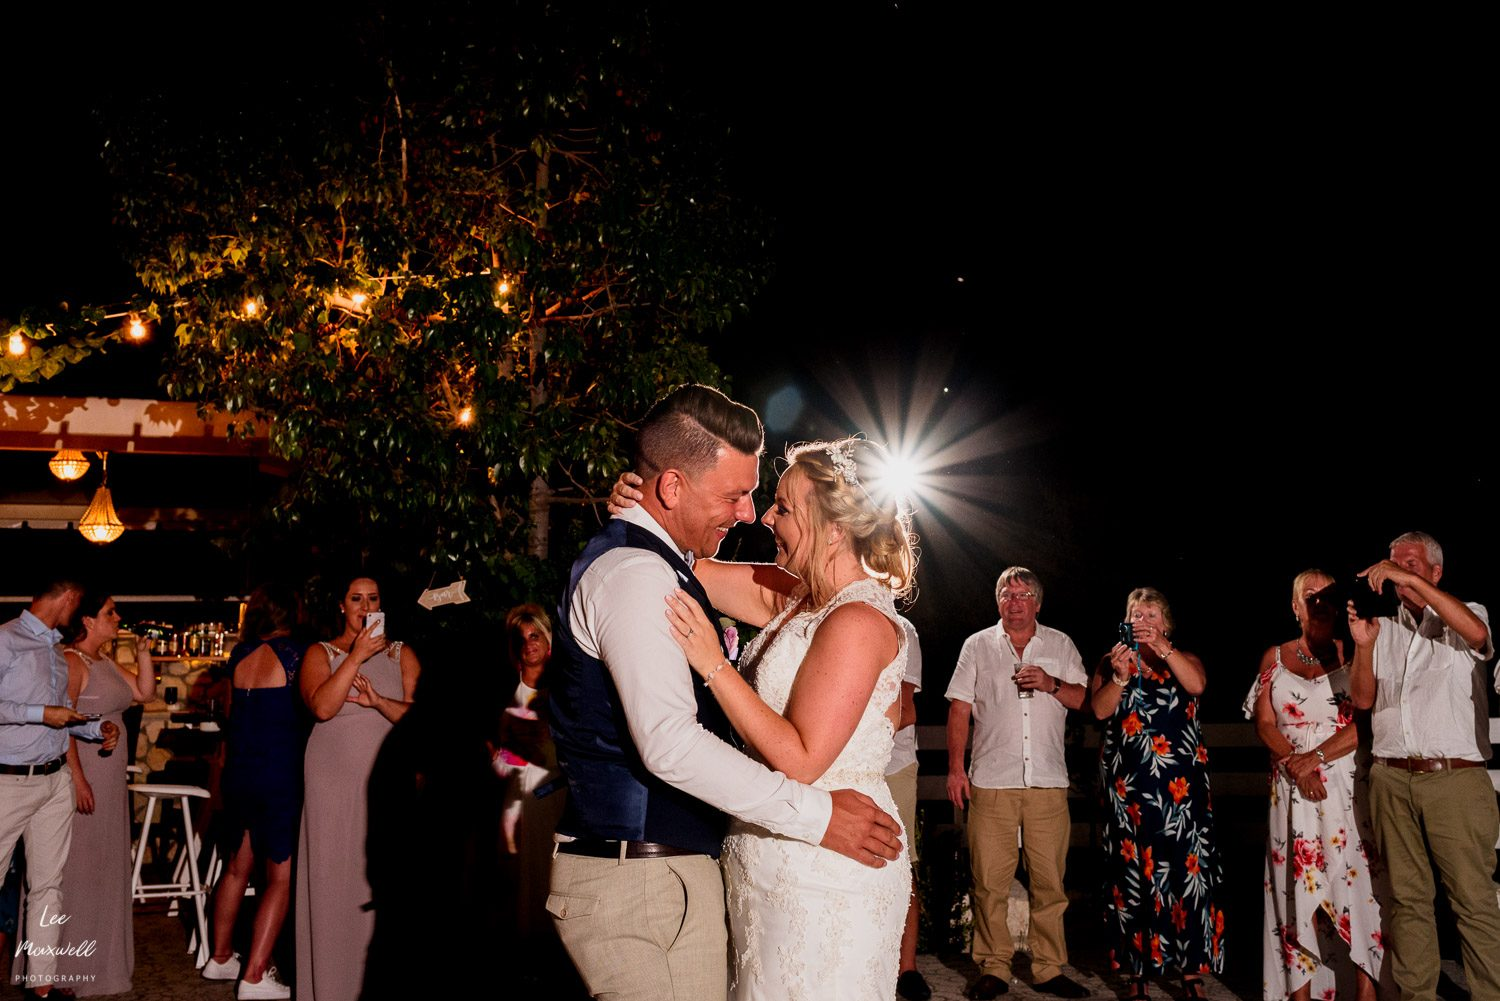 First dance at Kefalonia wedding